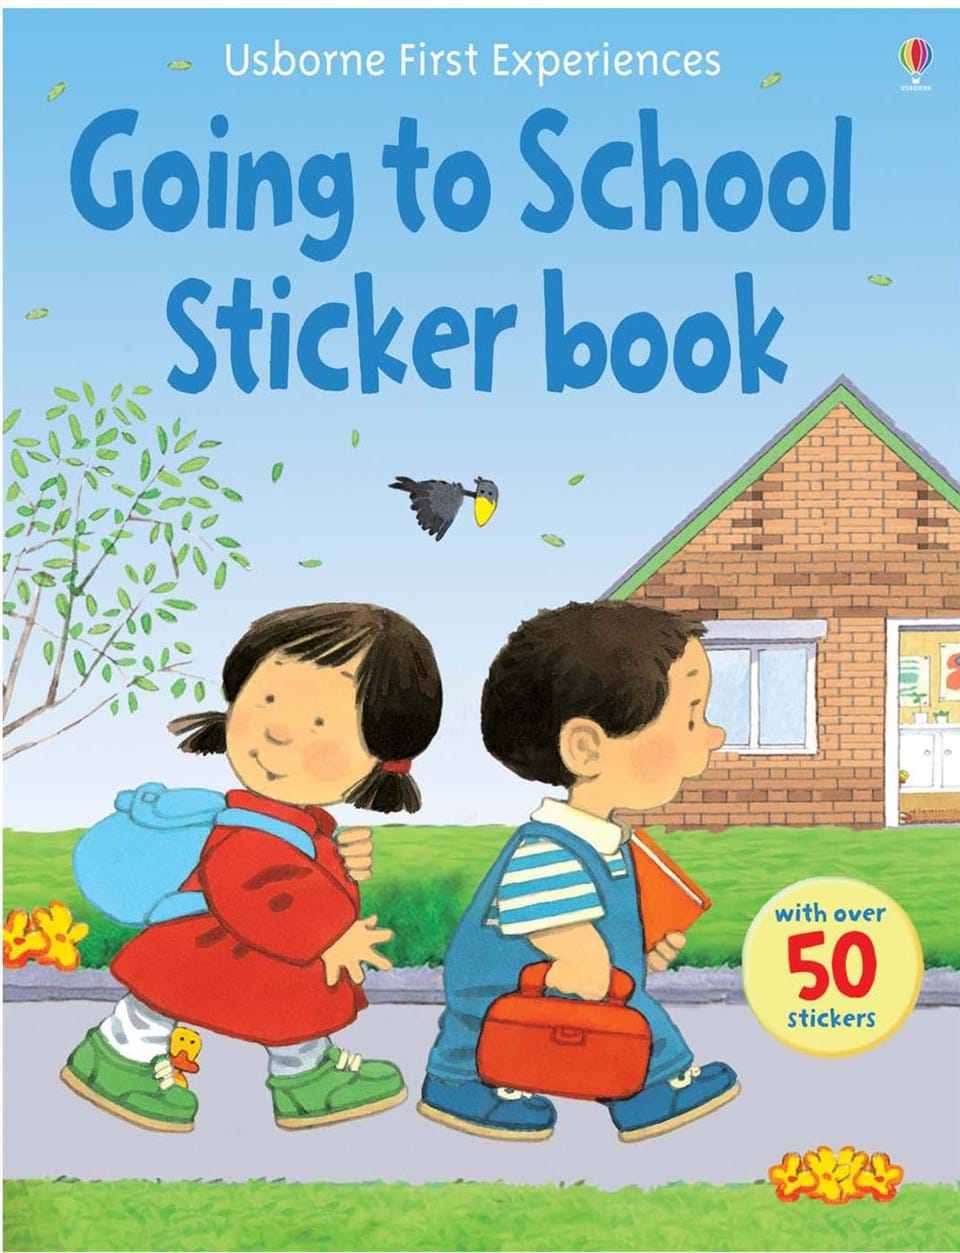 Going to school sticker book - immagine di copertina